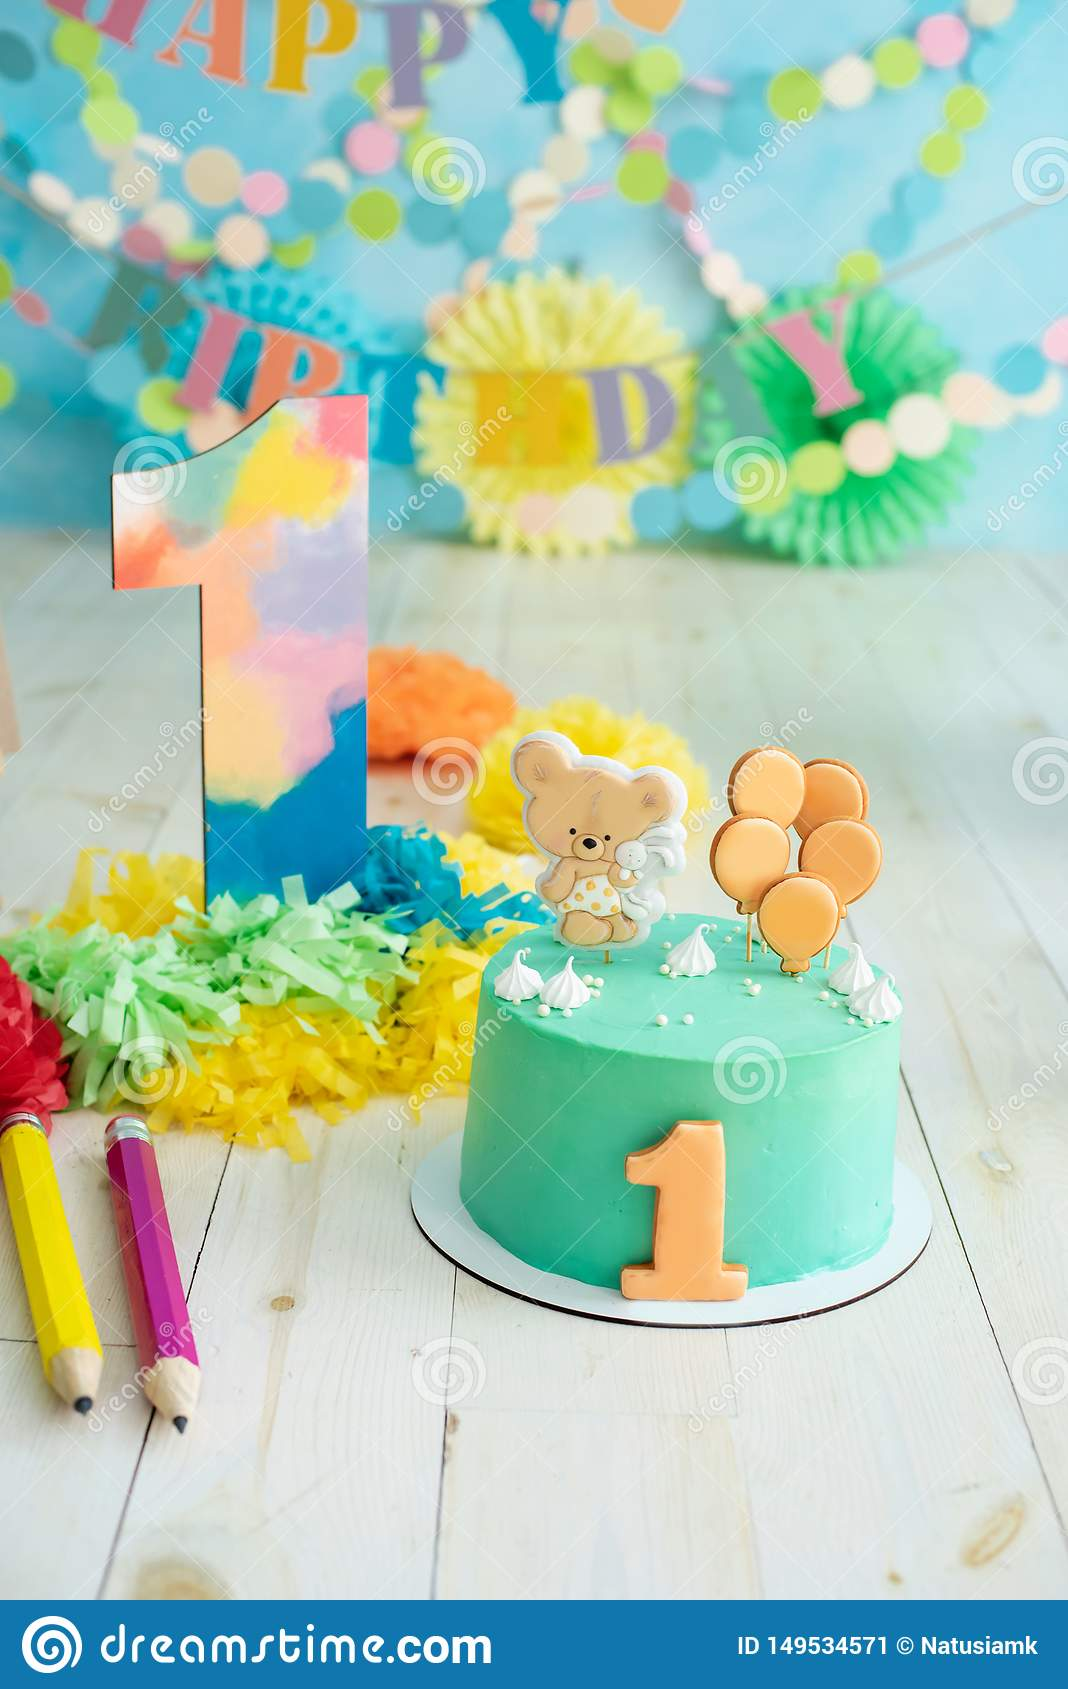 Prime First Birthday Smash The Cake Birthday Greetings Stock Image Funny Birthday Cards Online Inifofree Goldxyz